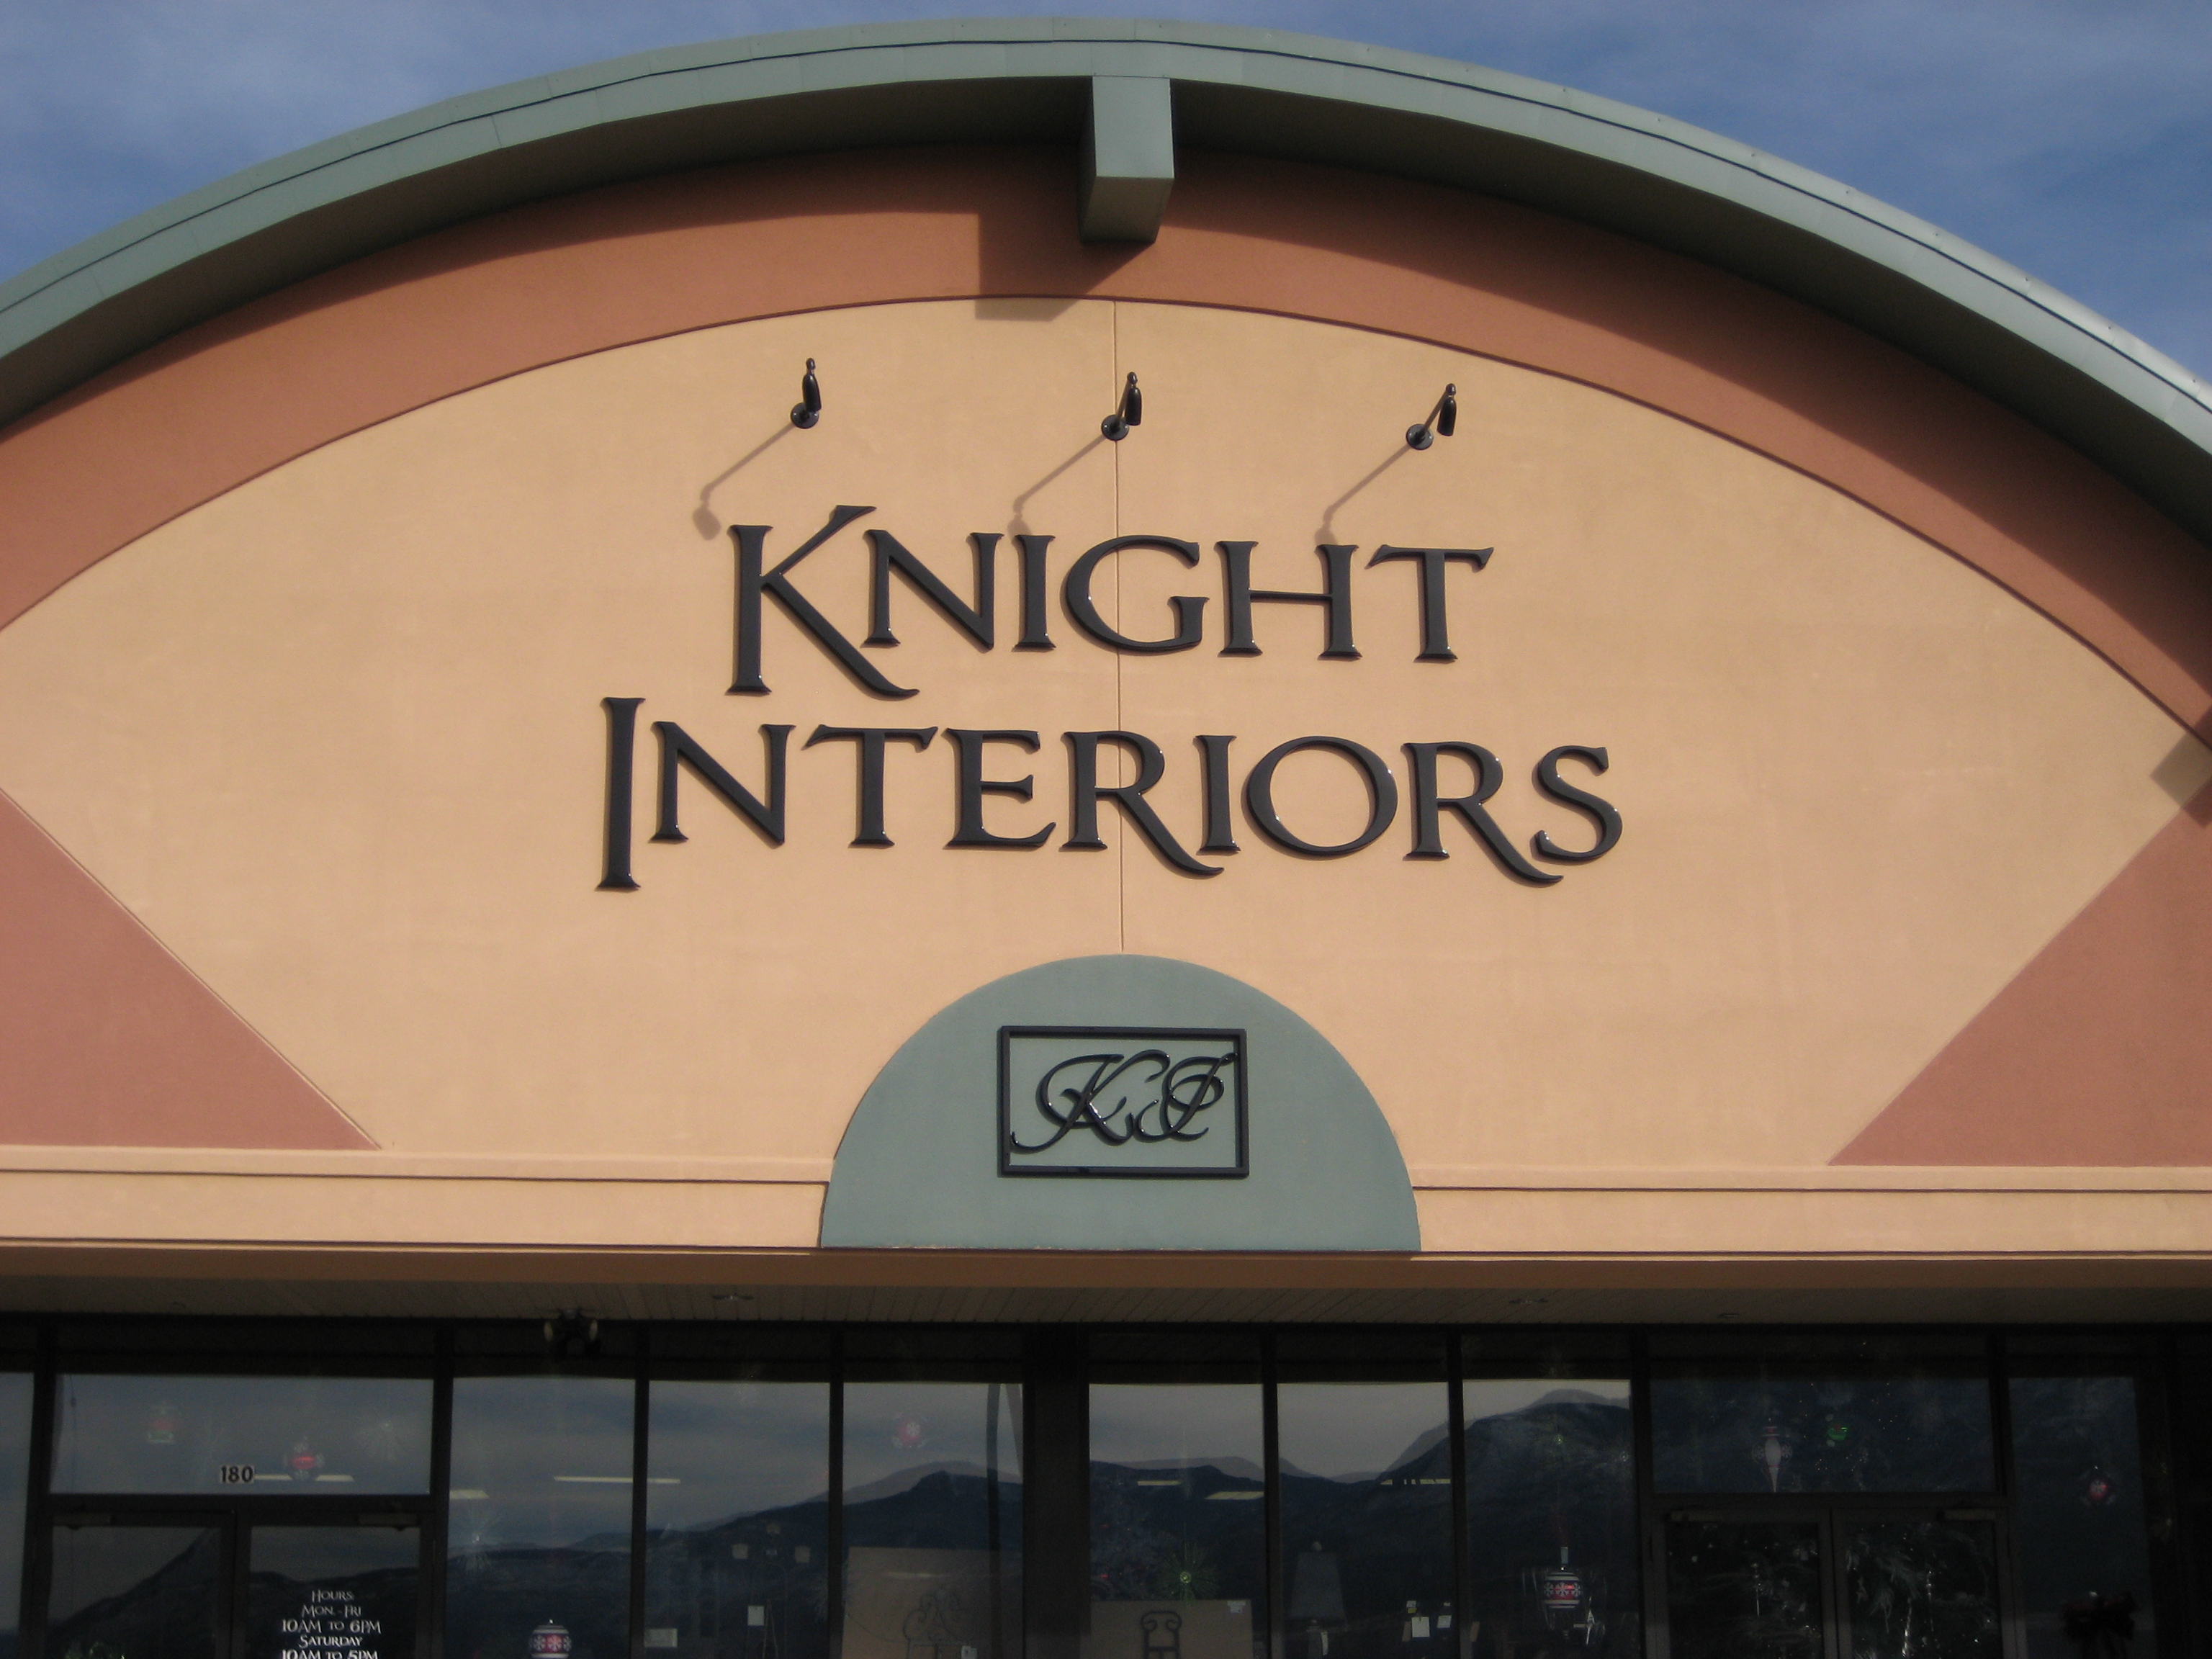 knight interiors sign central inc